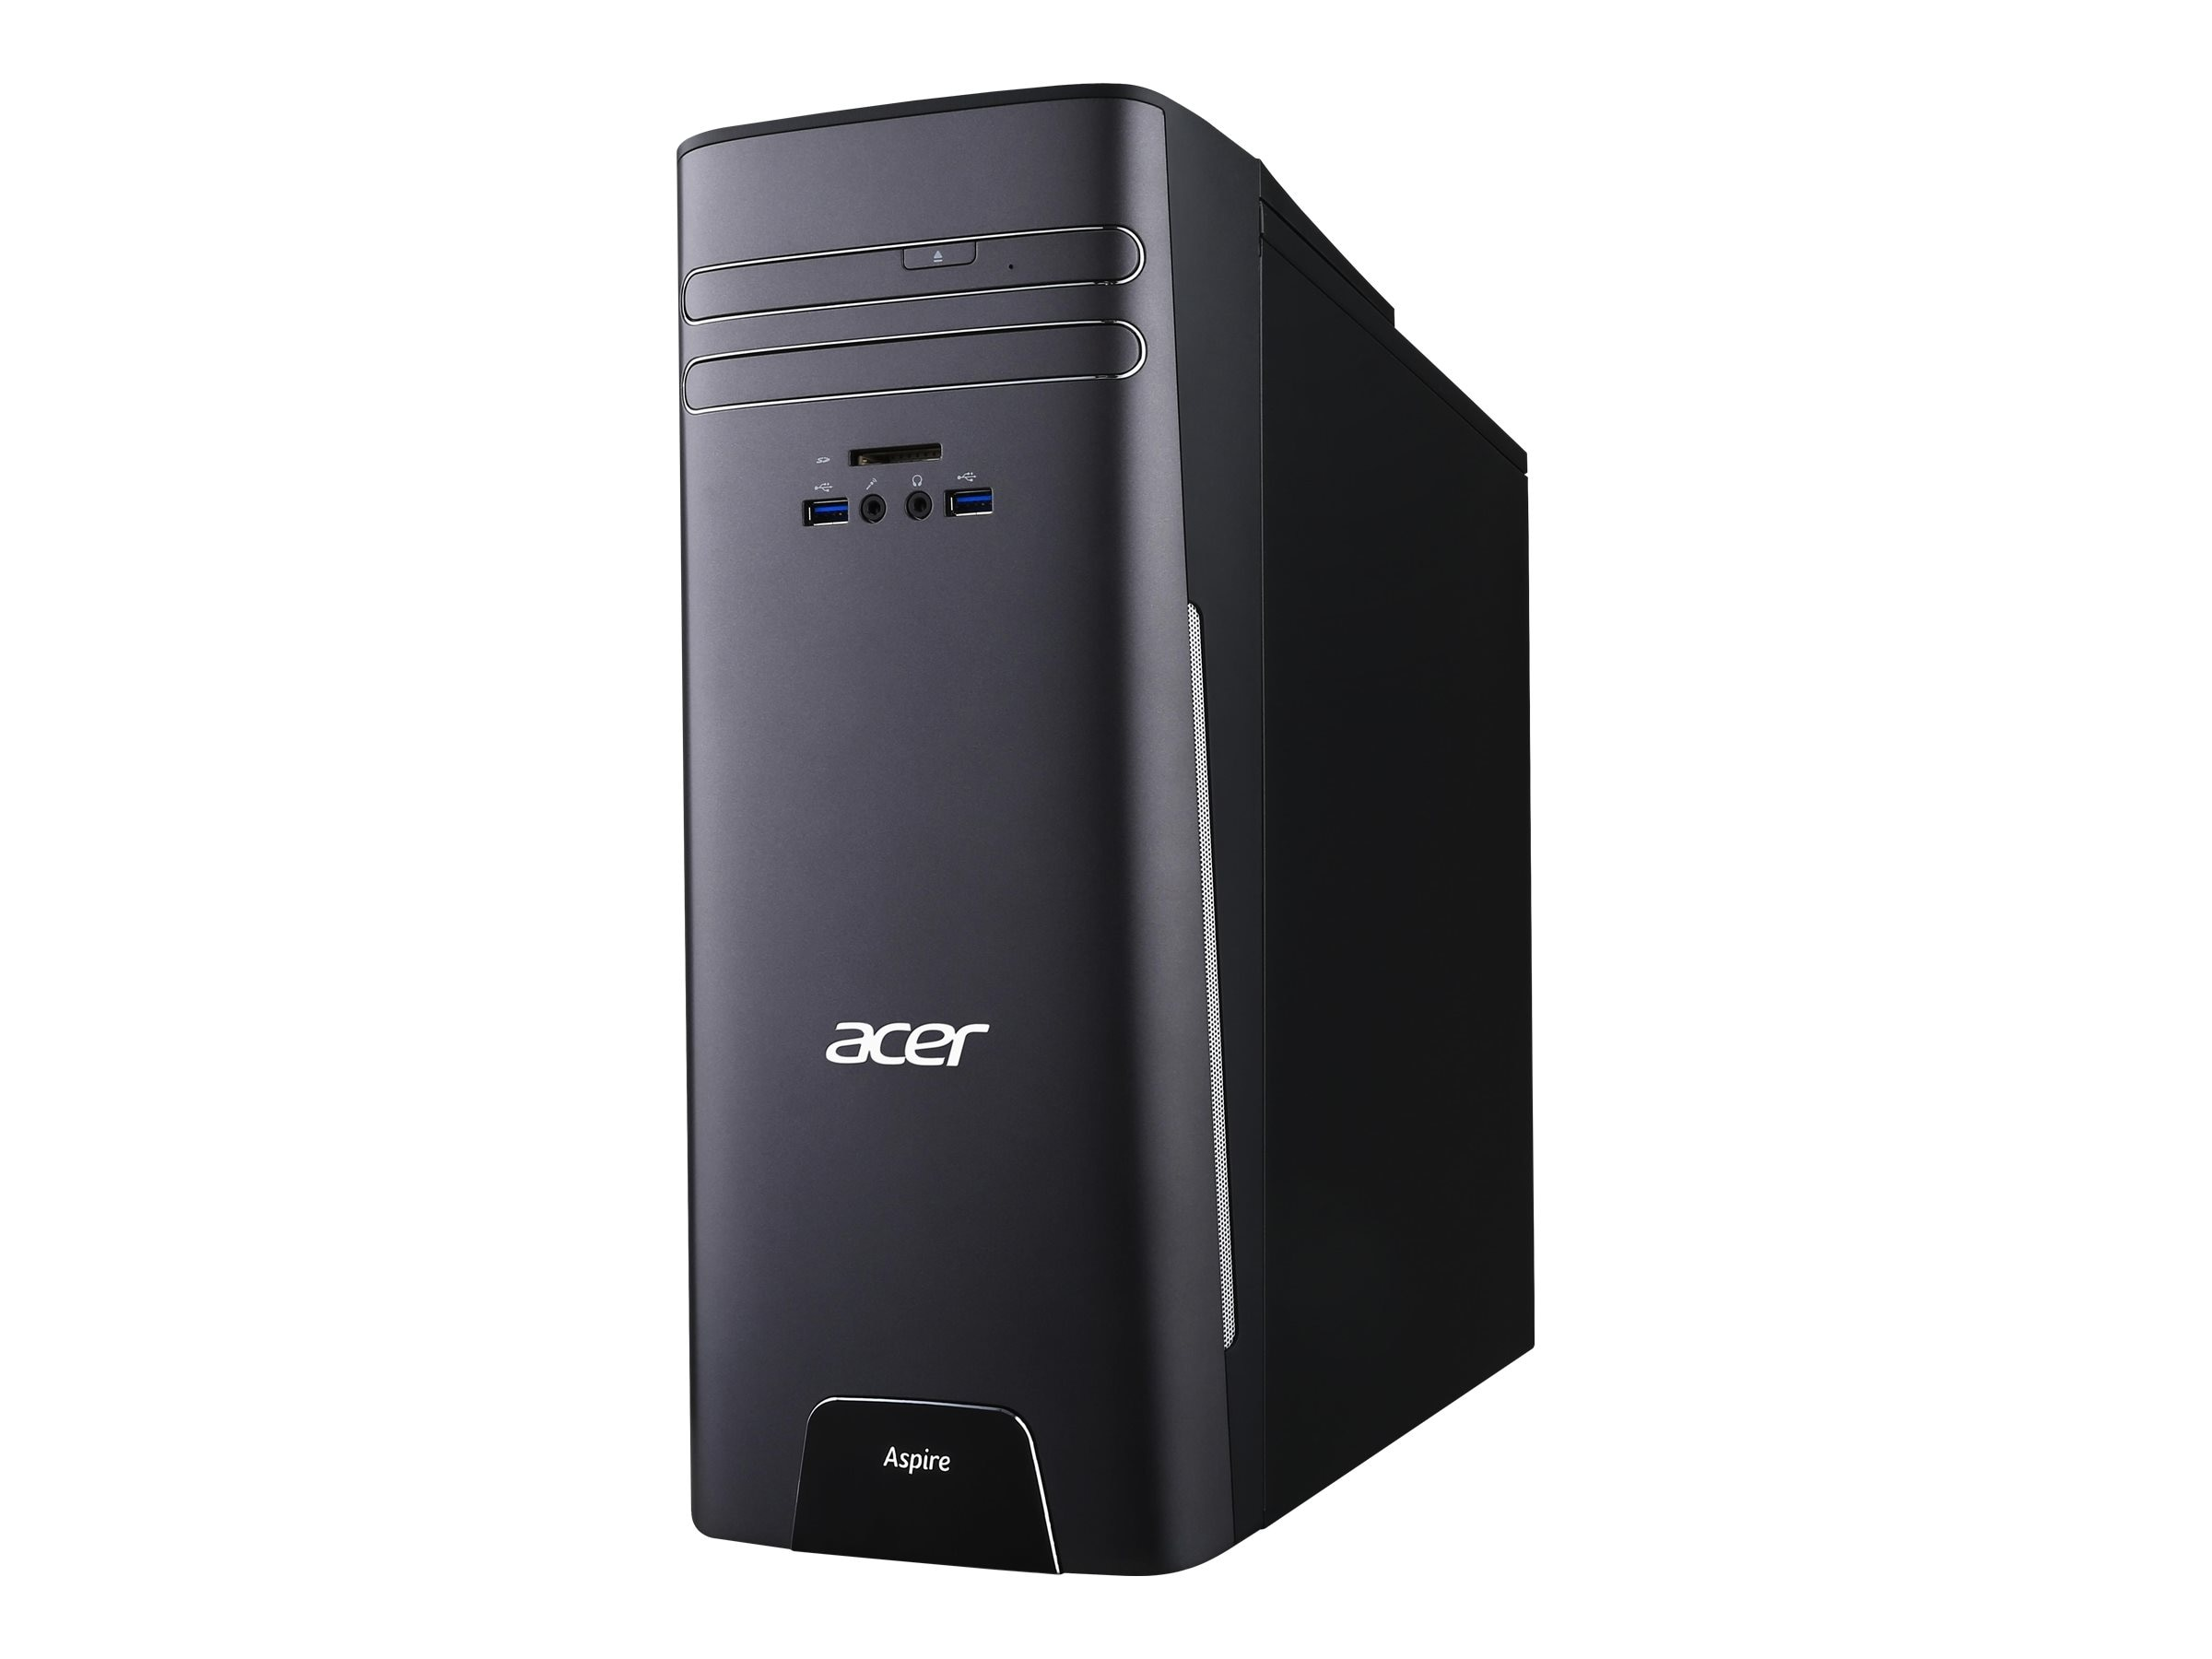 Acer DT.B1HAA.001 Image 4